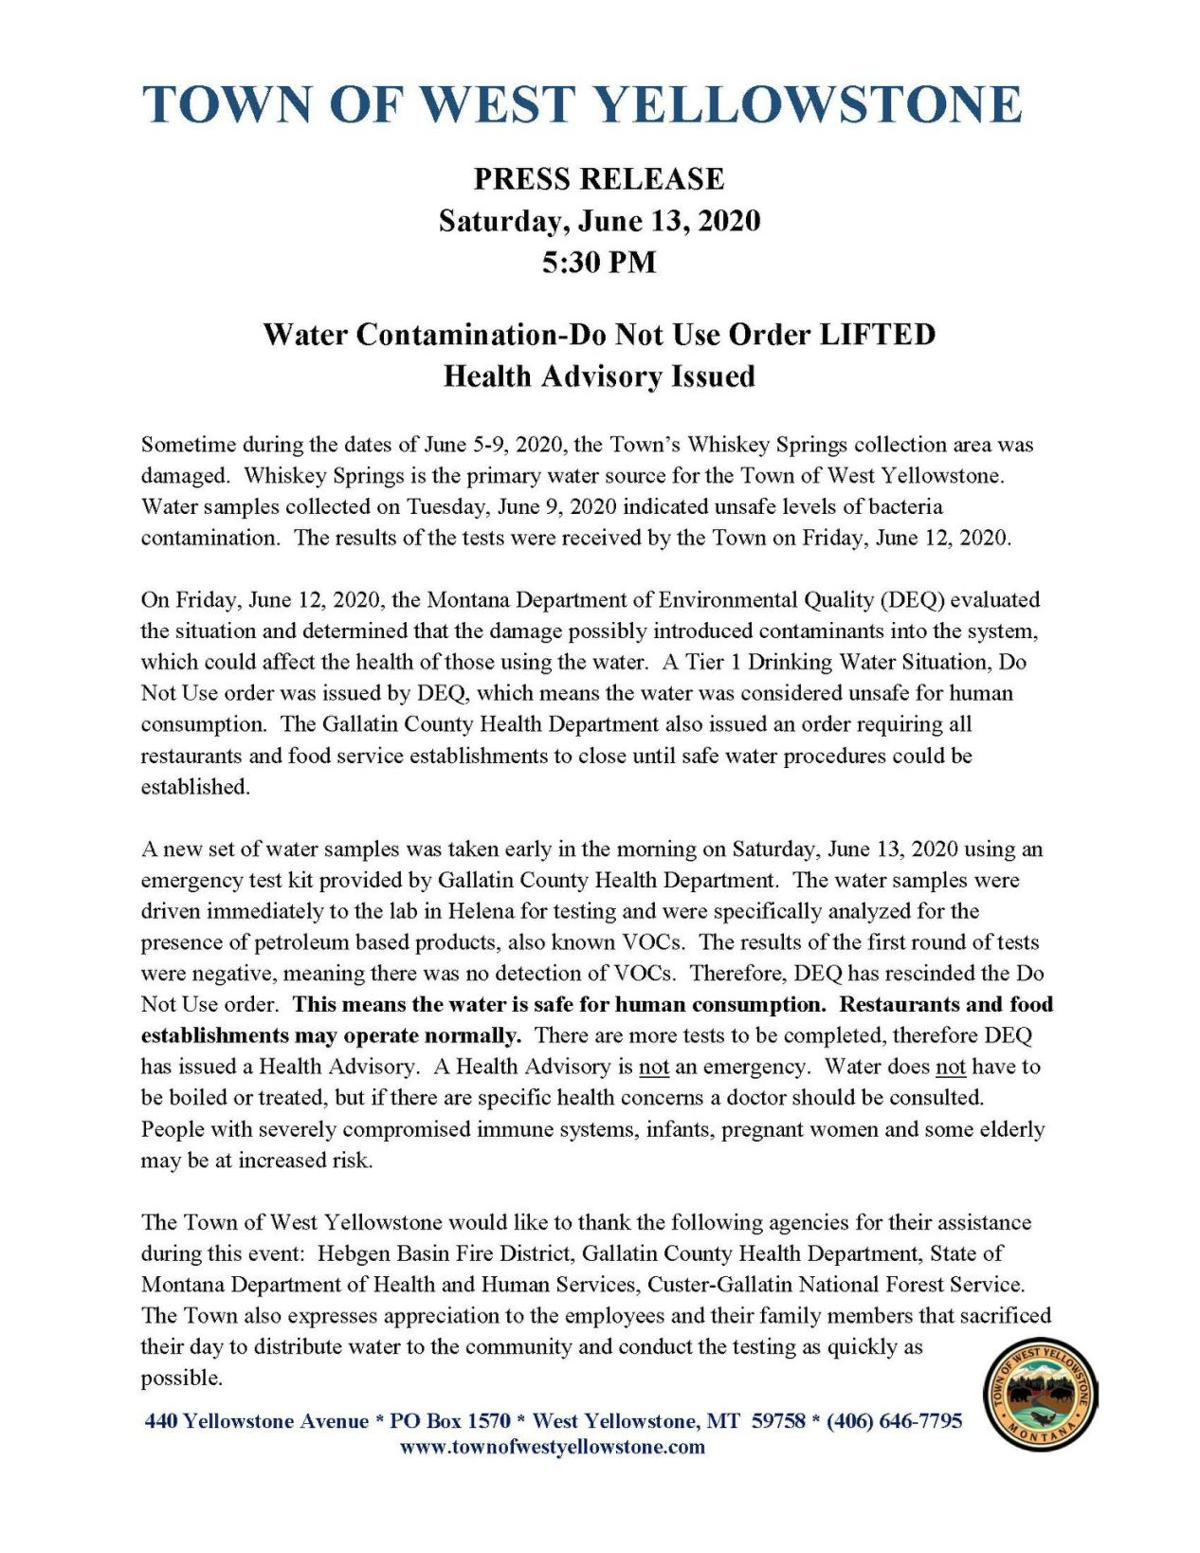 Town of West Yellowstone release